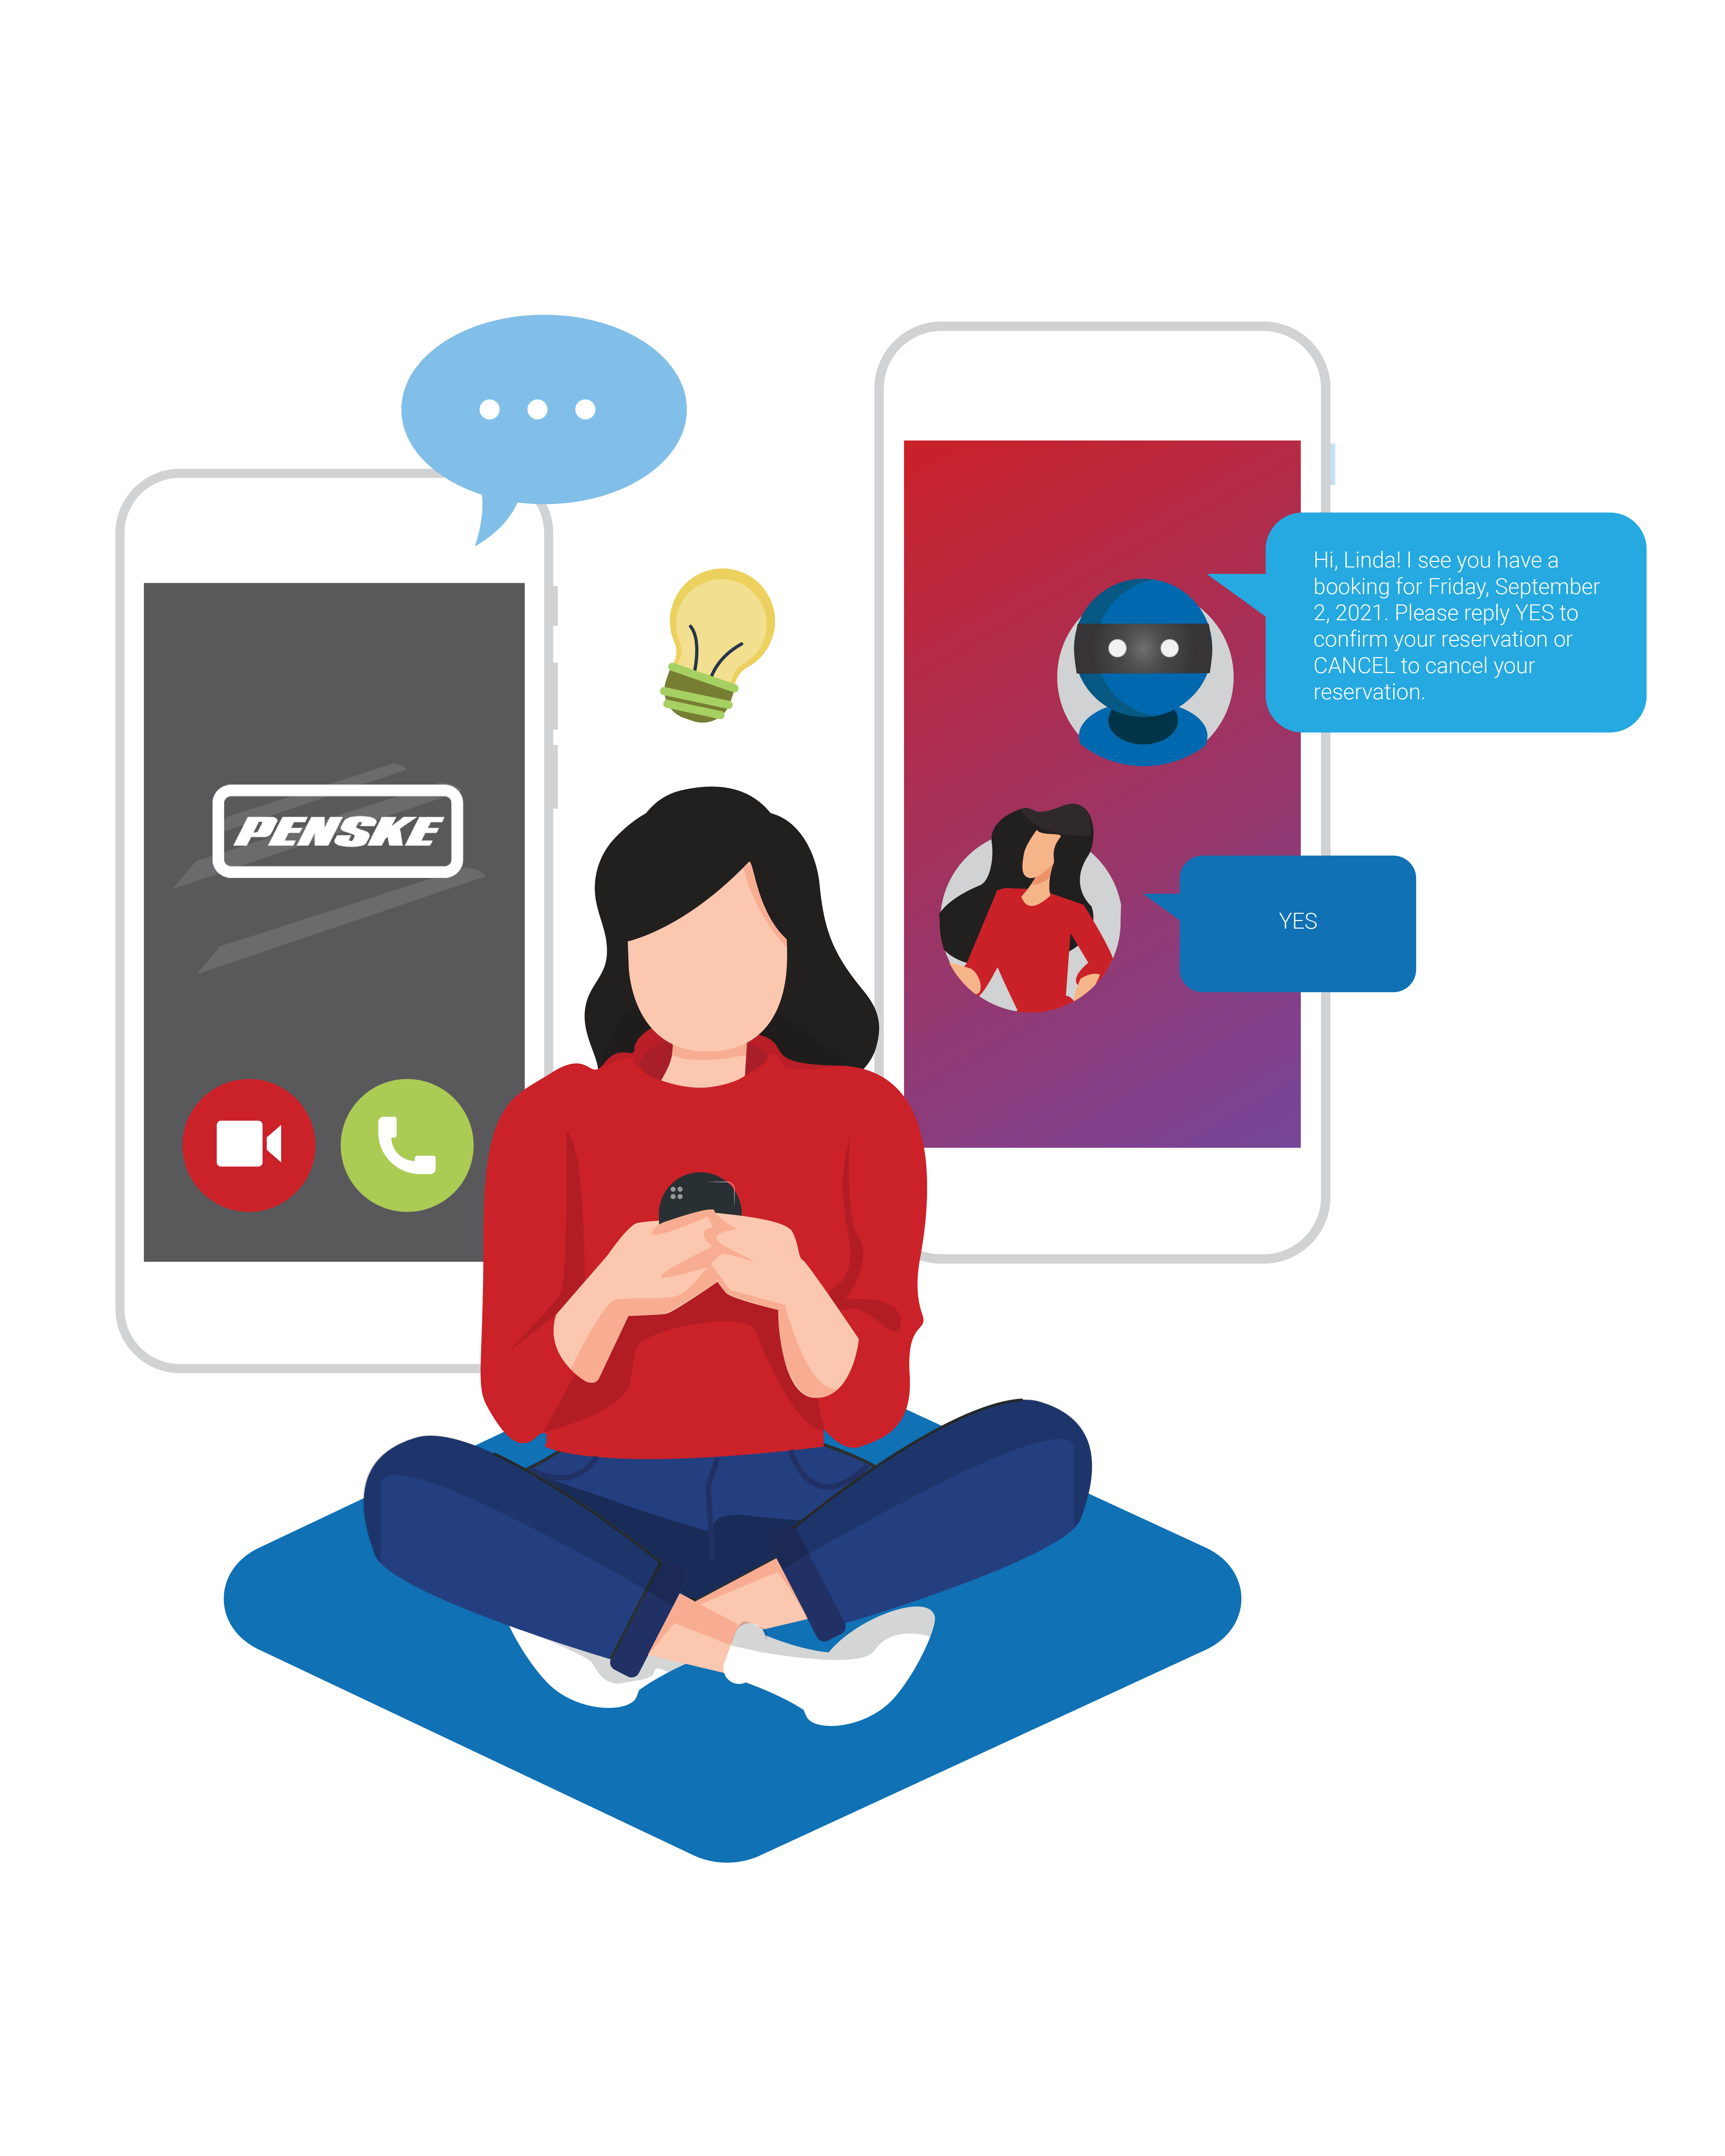 Penske trucking uses virtual chat agent SmartAction Ai